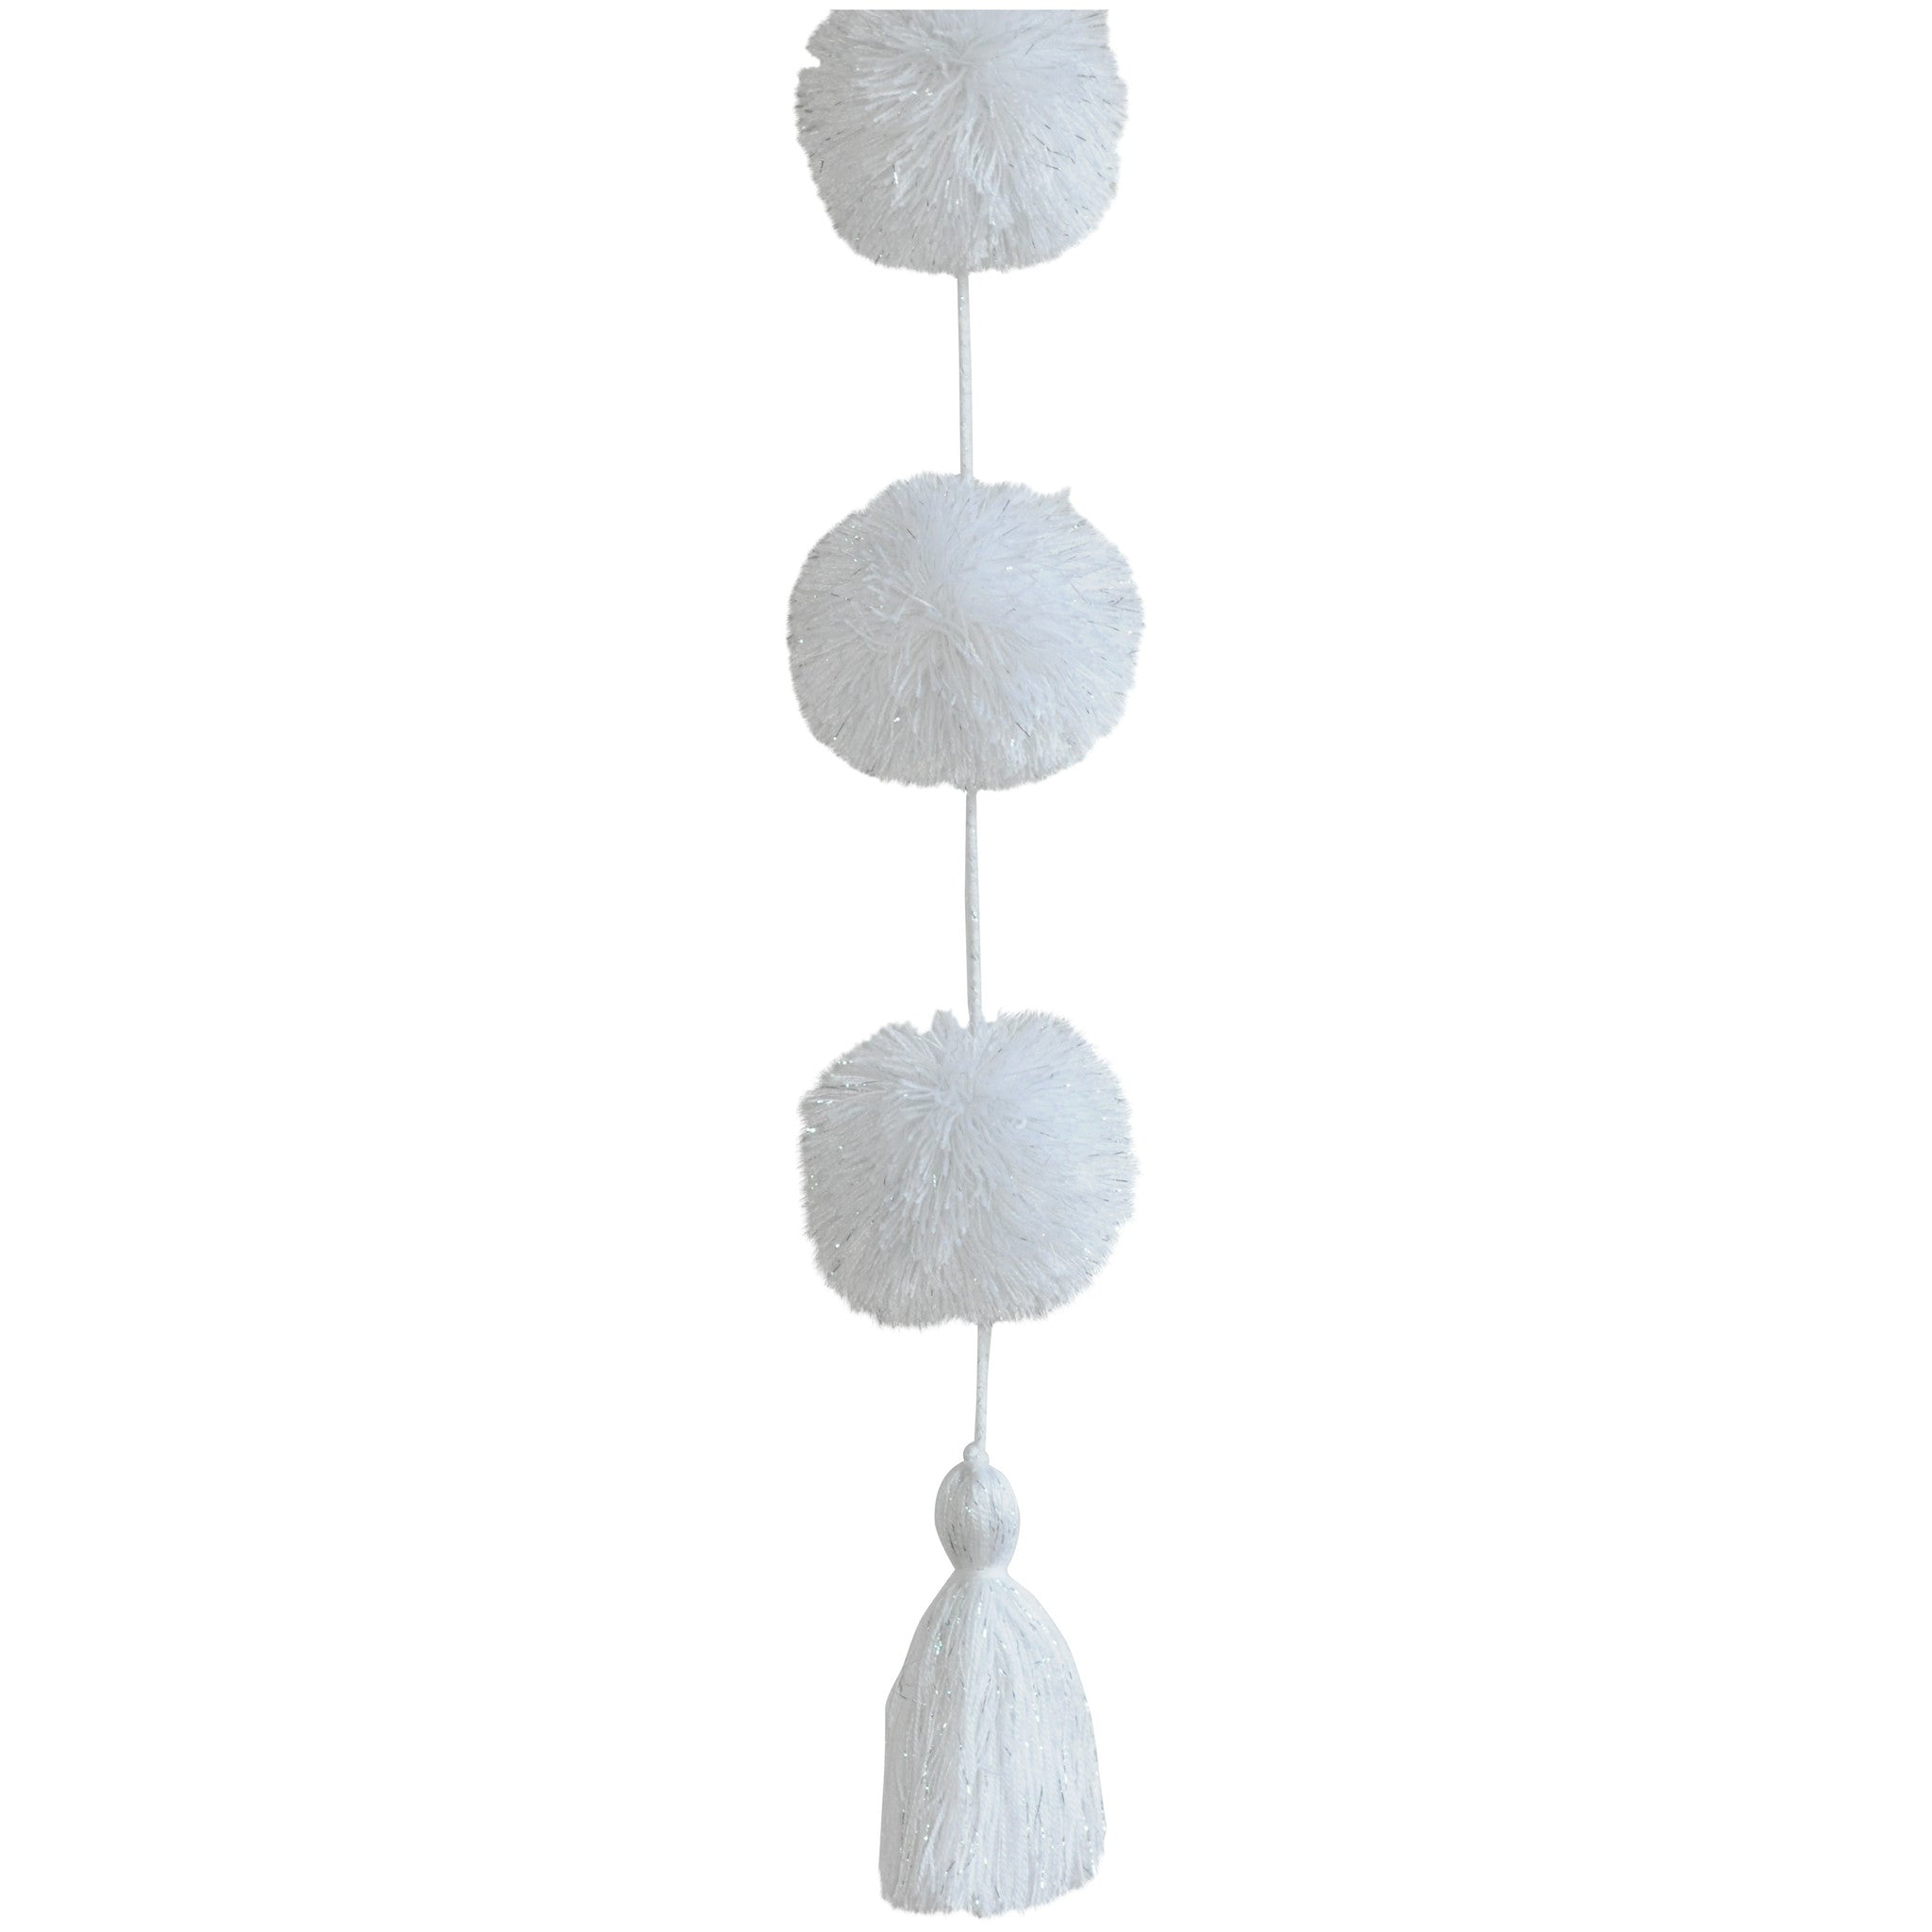 "Pompom Hanging - 36"" - White with Metallic Silver"